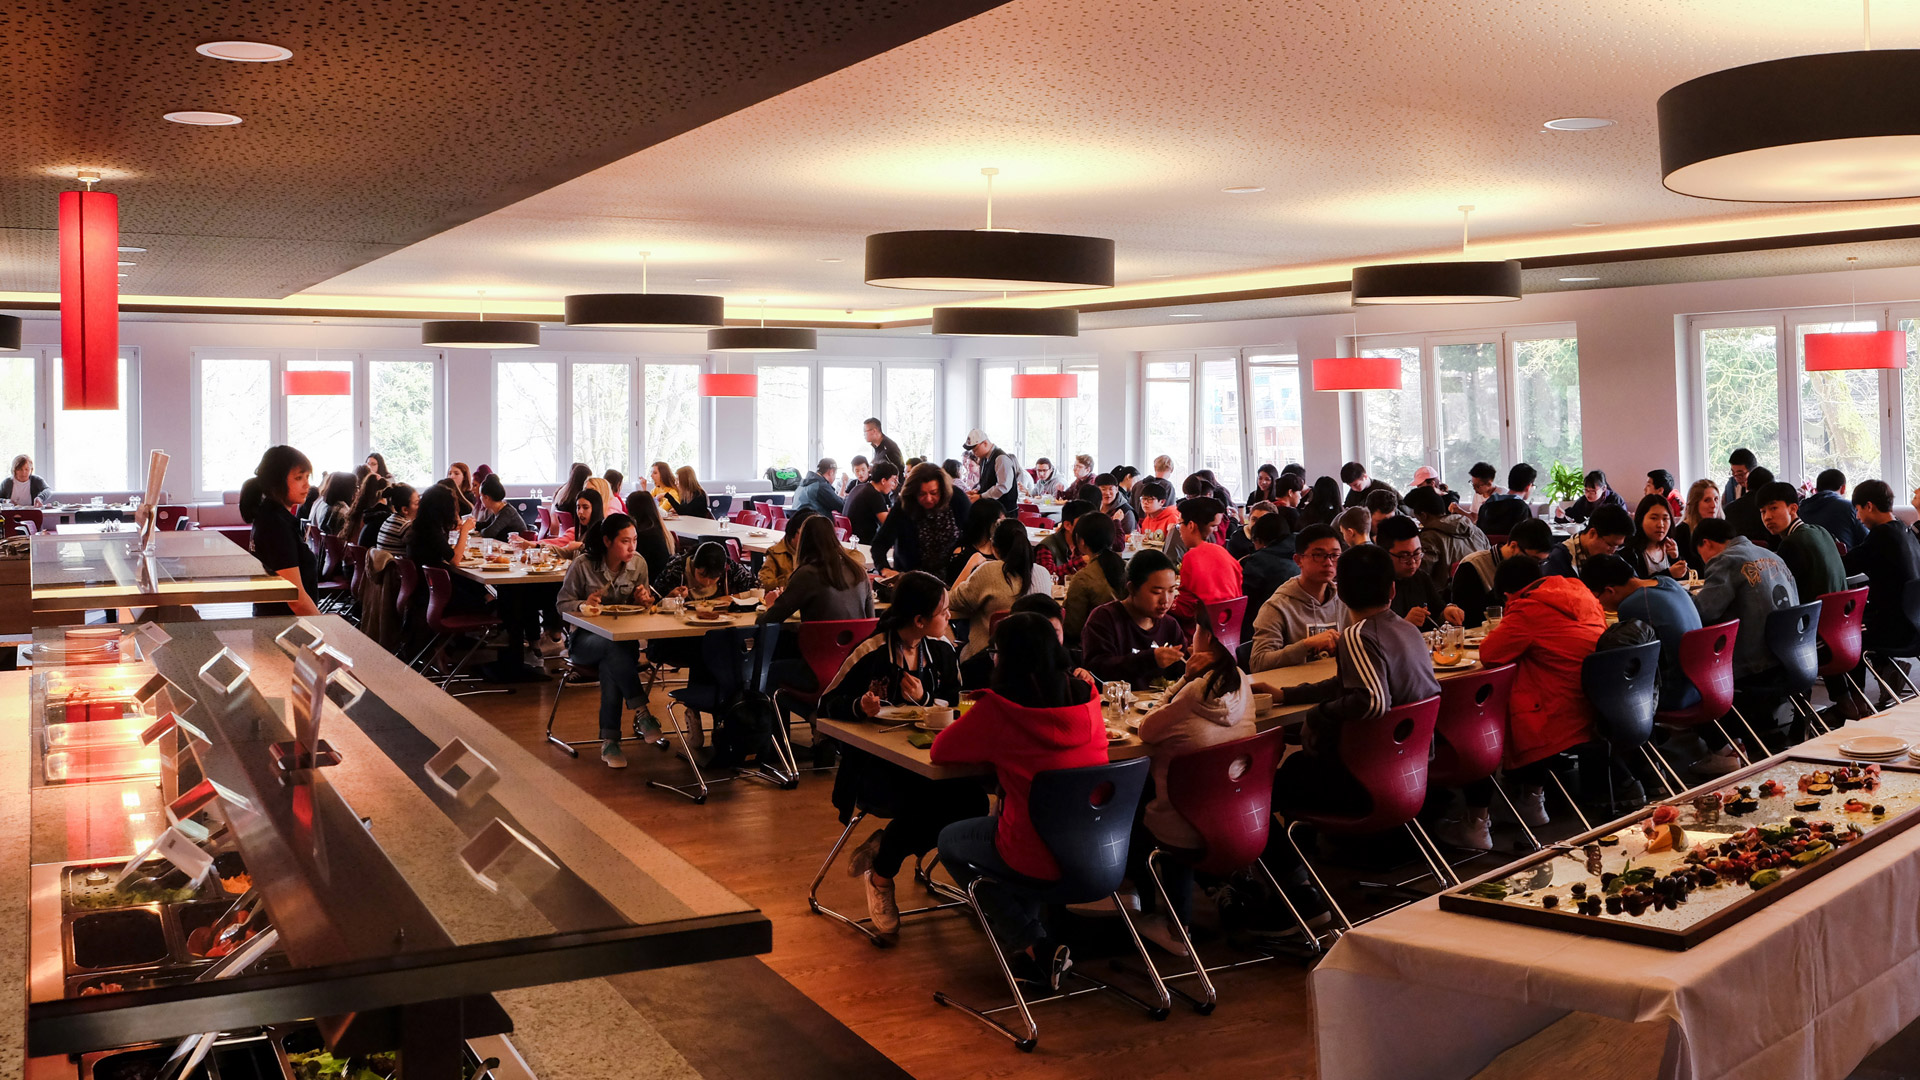 Students in the school's dining hall